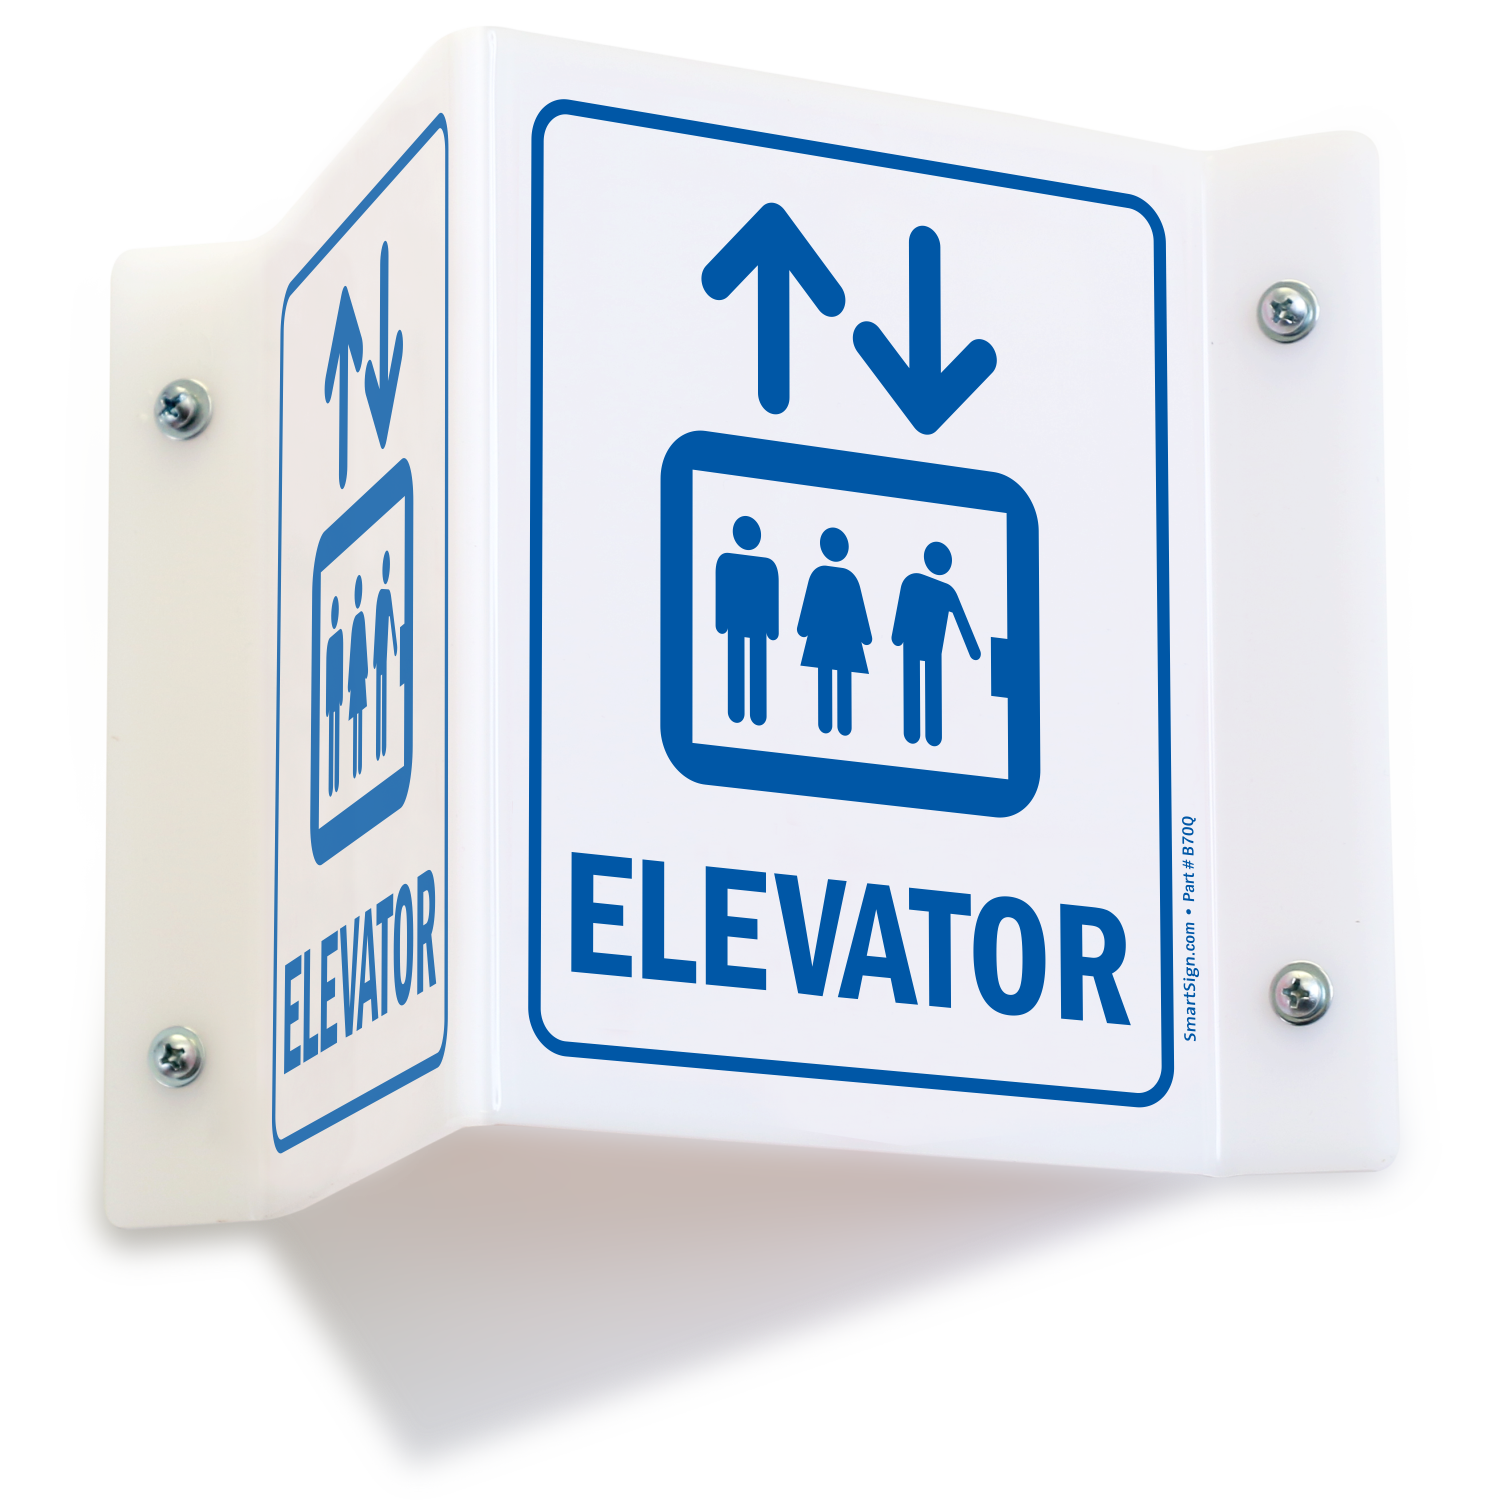 Freight Elevator Signs on Weight Room Safety Rules